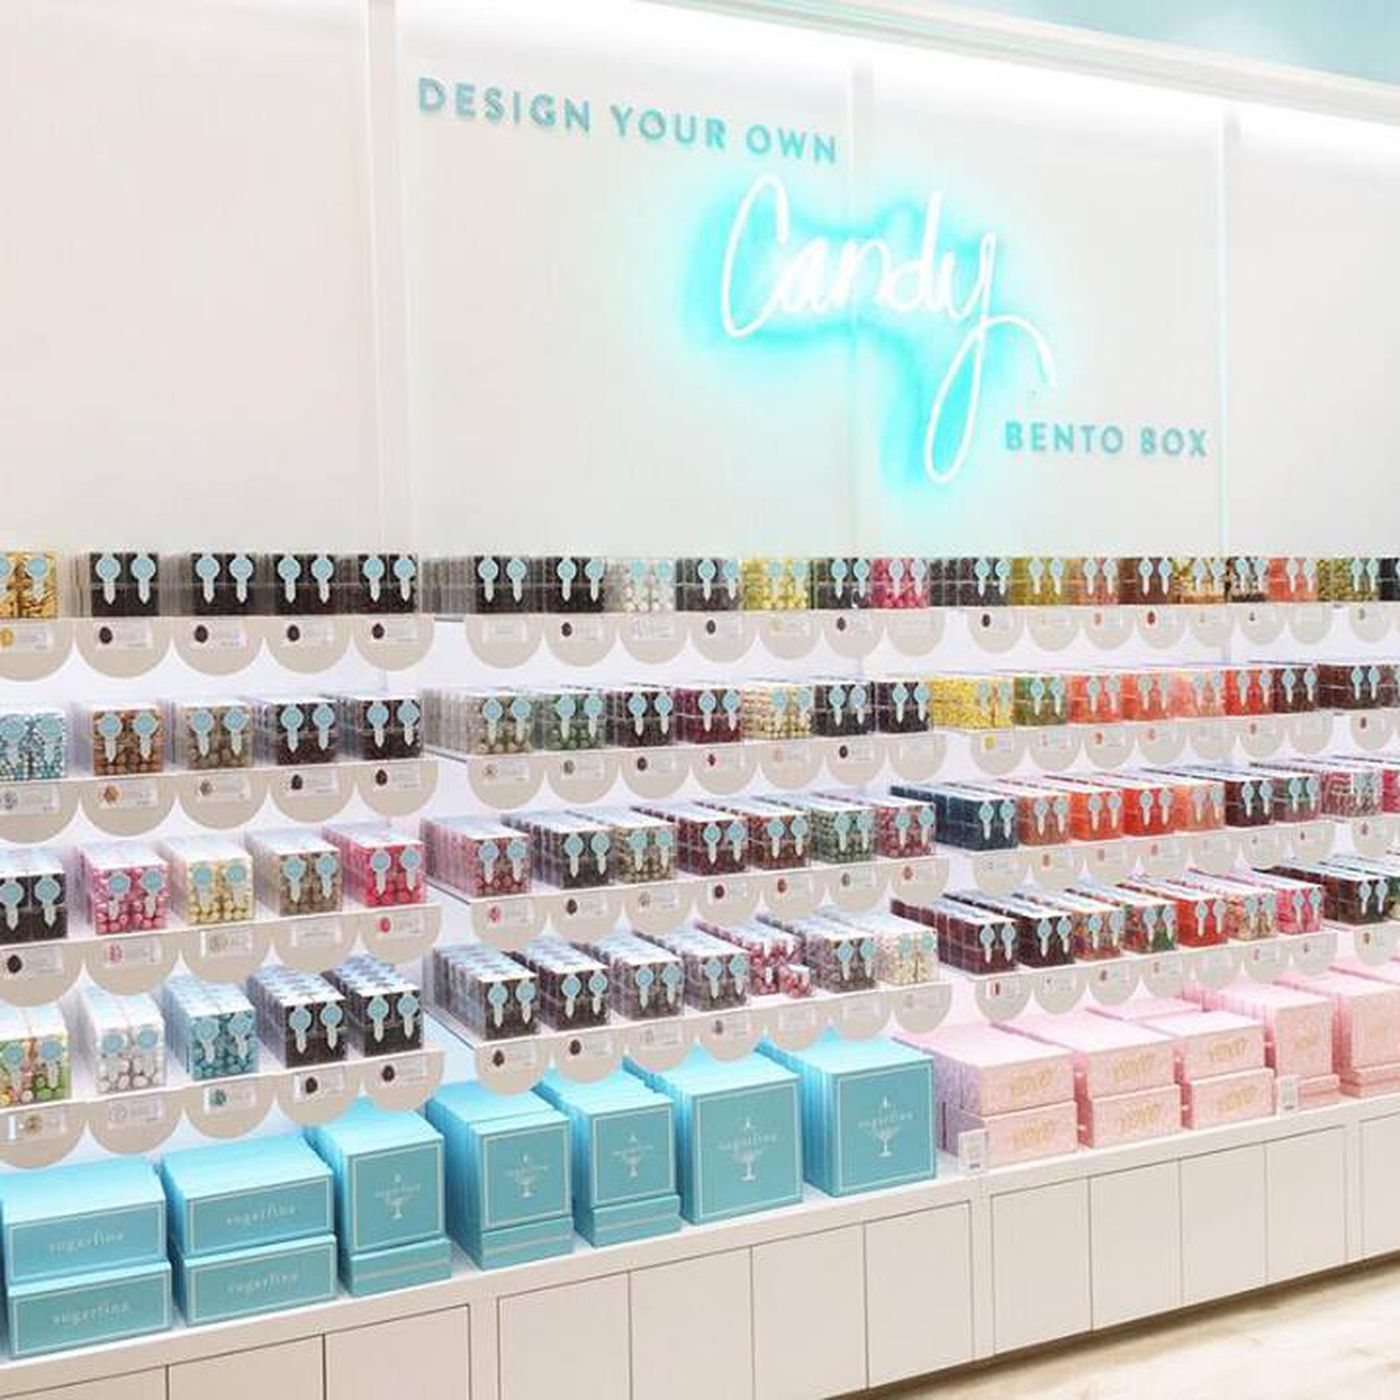 Cult Candy Shop Sugarfina Arrives at Union Station - Eater DC